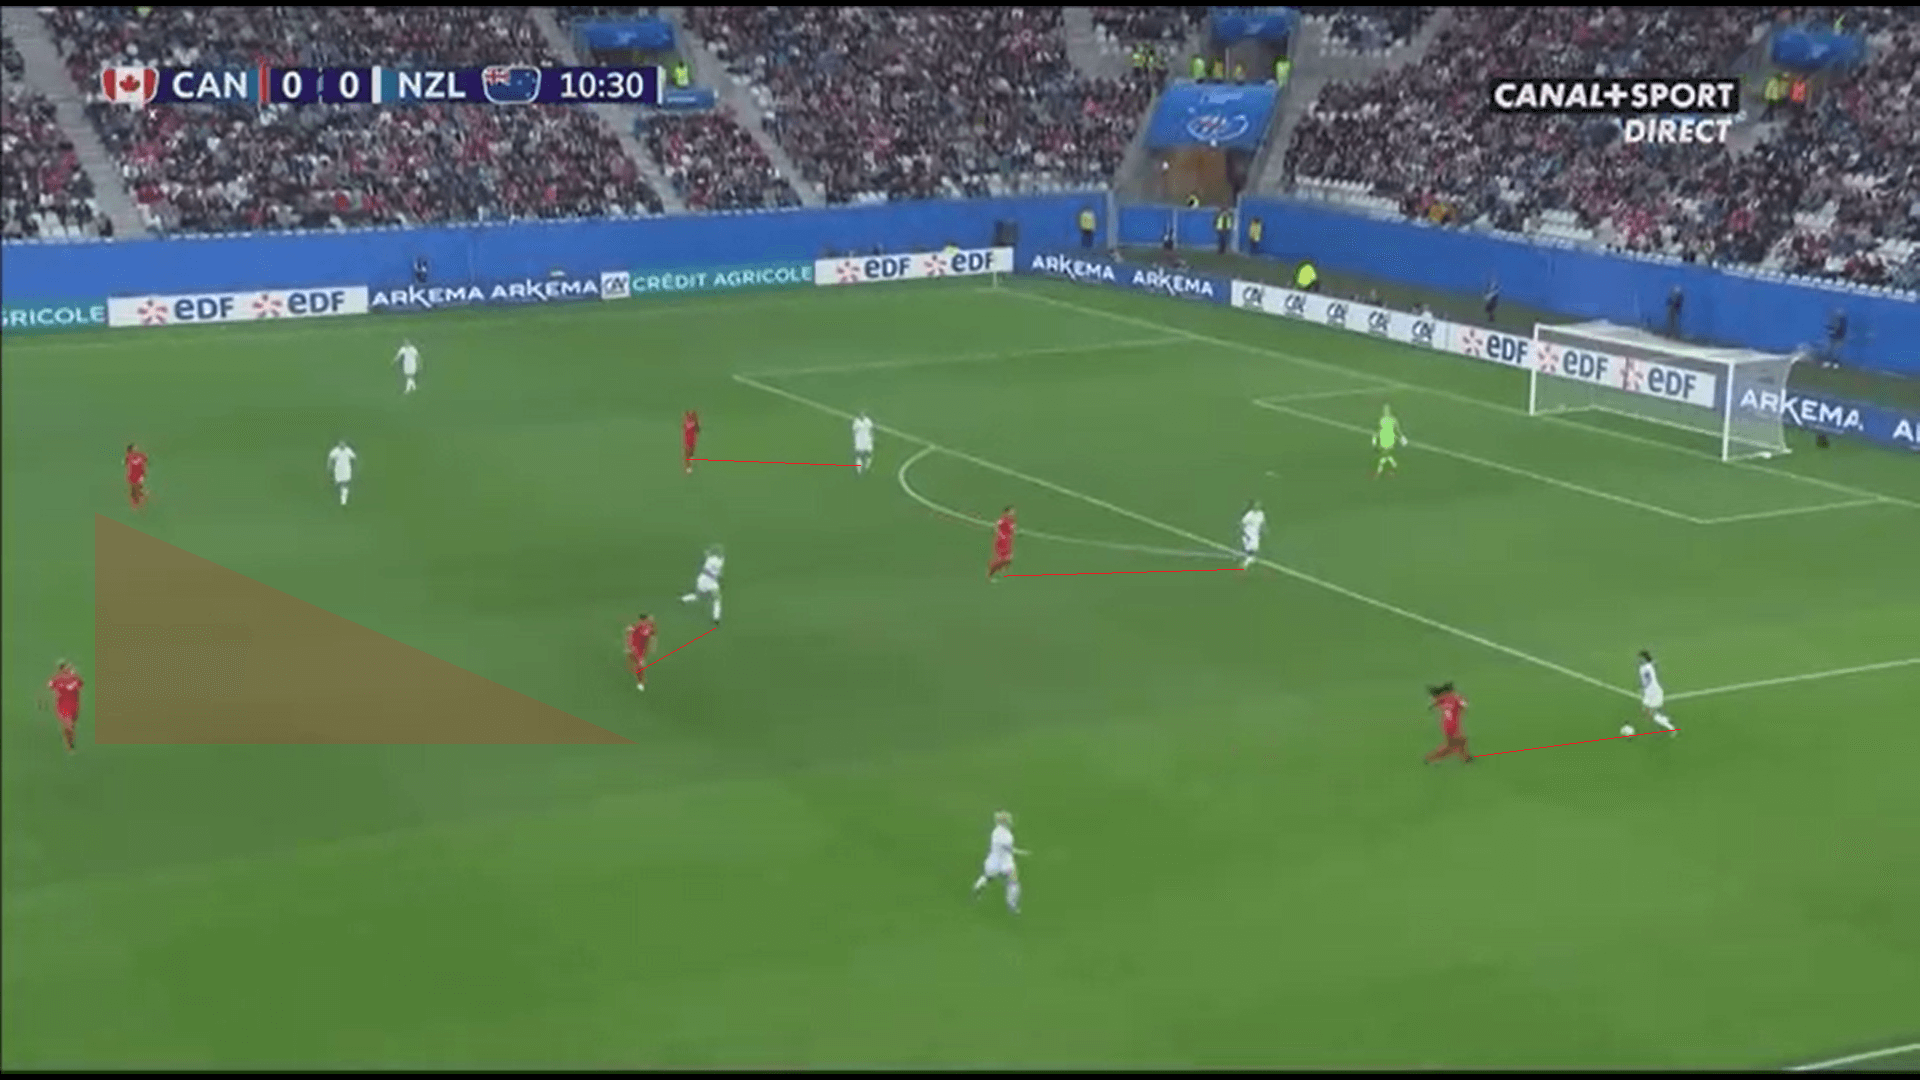 FIFA Women's World Cup Tactical Analysis 2019: Canada vs New Zealand